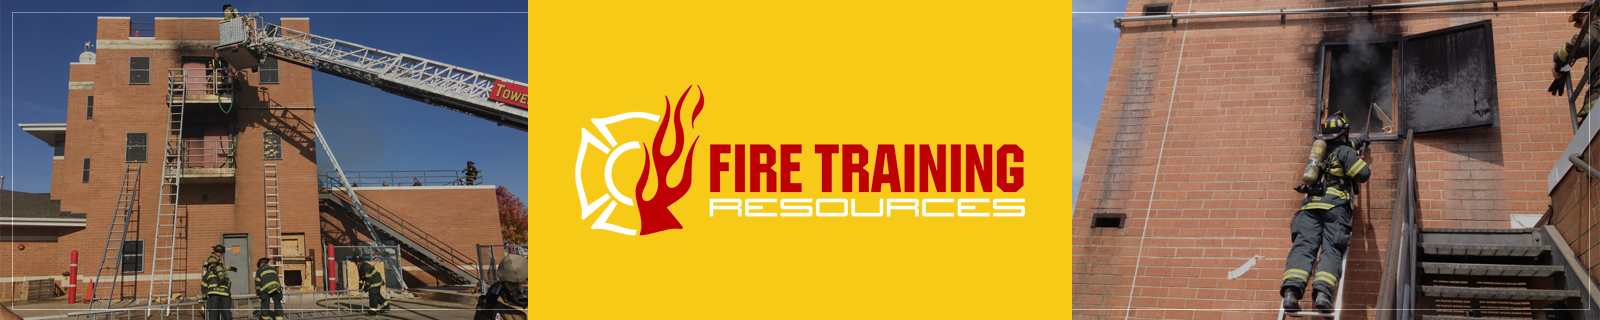 Firefighter Health and Fitness Training - Plainfield, IL